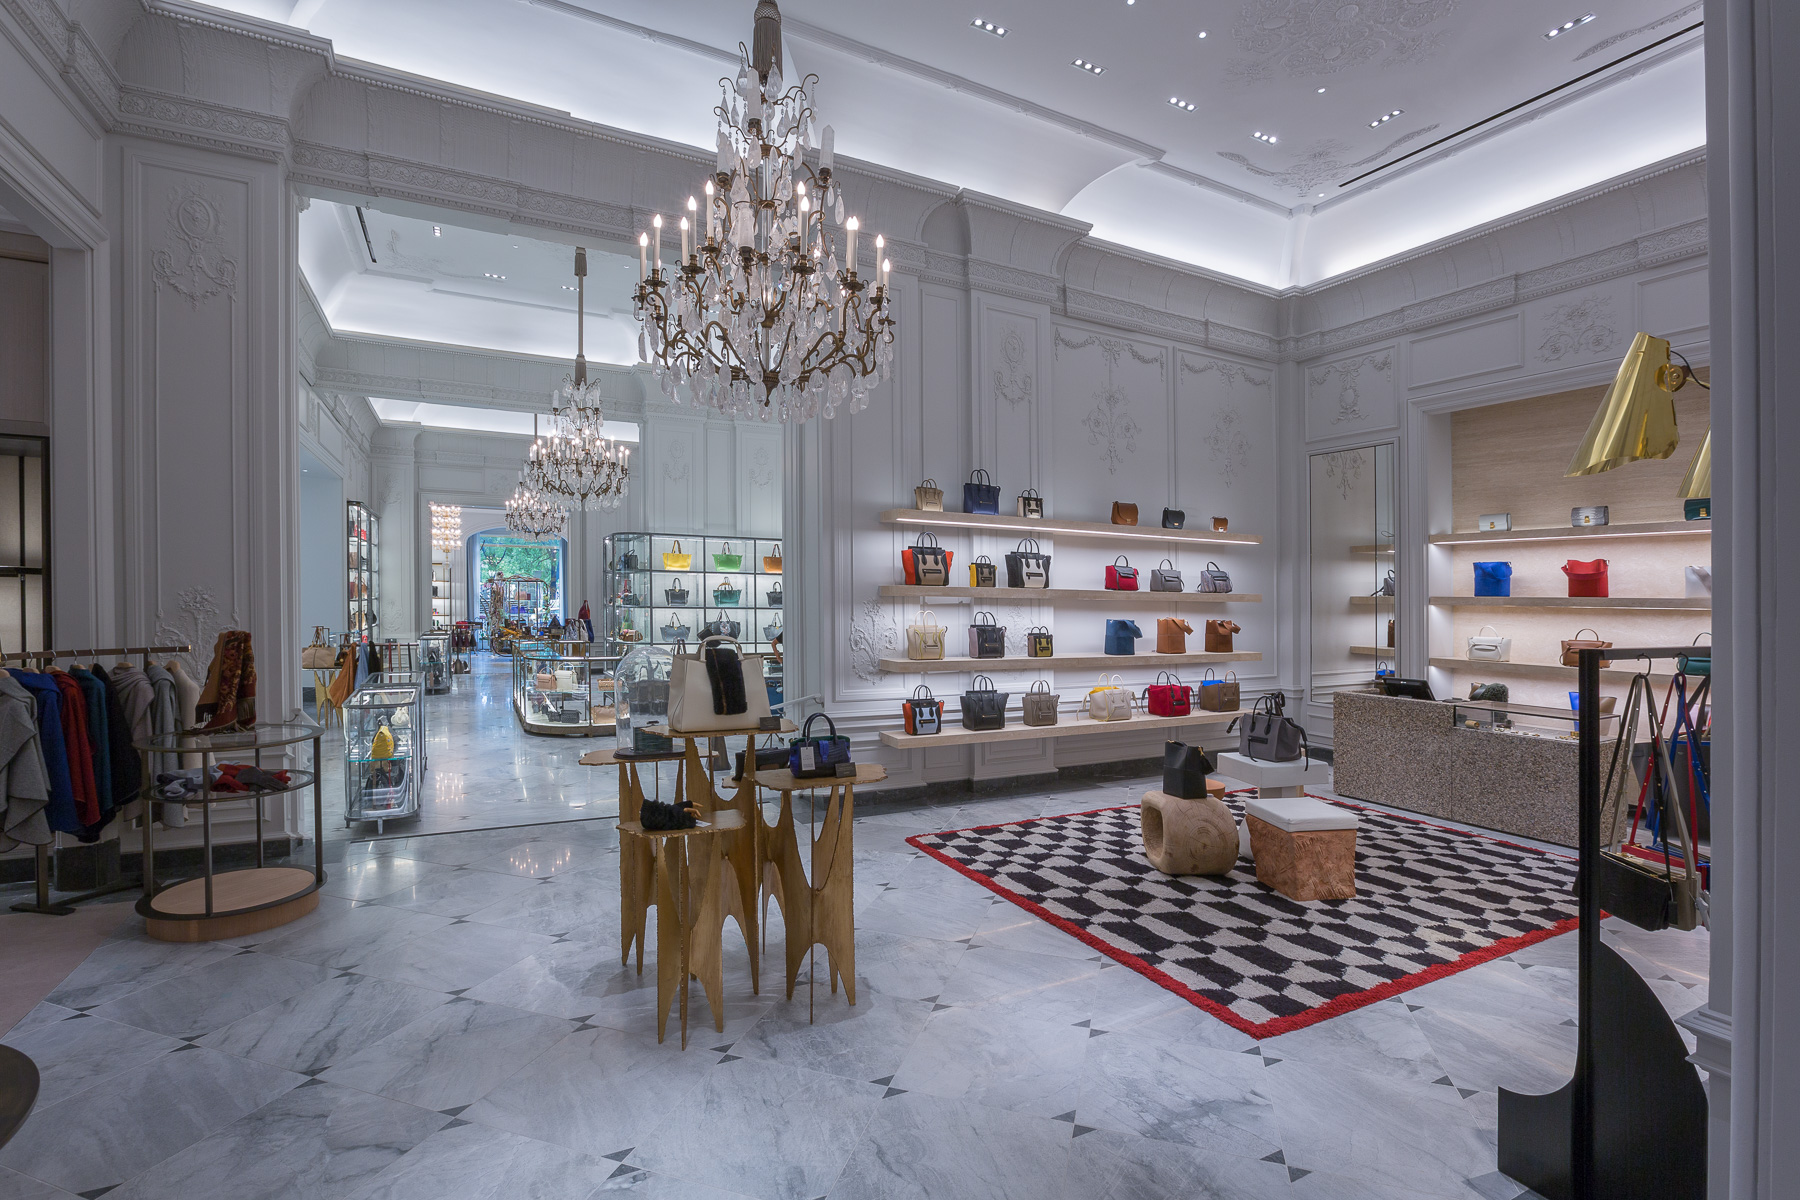 Visit either of our Bergdorf Goodman store information pages for more details about our location, phone numbers, subway directions, store hours, restaurants, services and events.